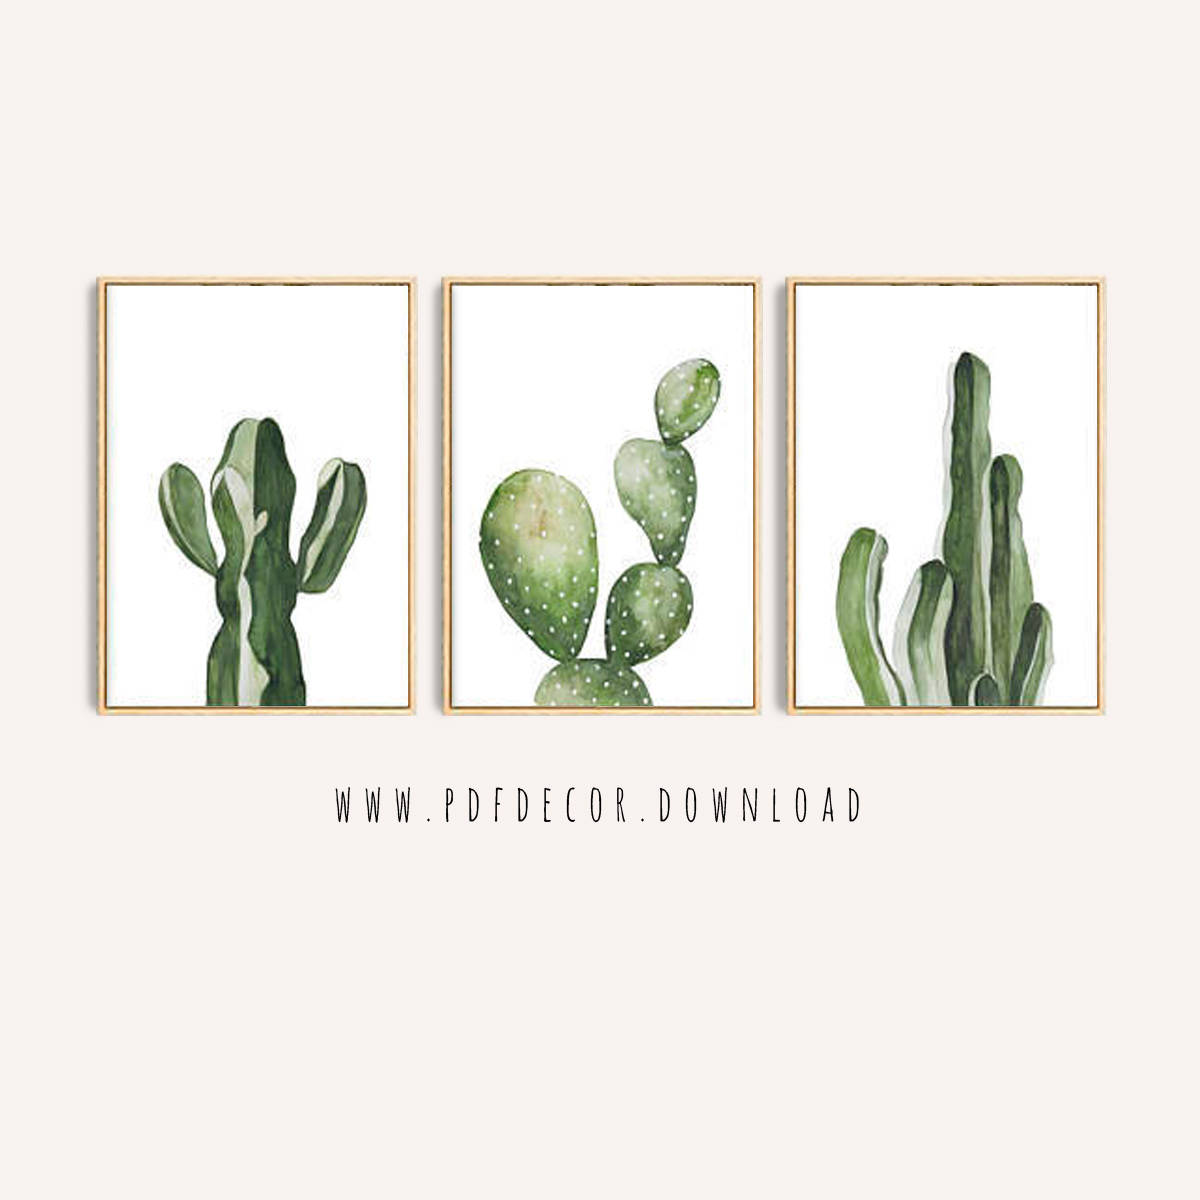 Cactus Print Set, Set of 3 Cactus Art, Set of 3 Prints, Wall Art, Cactus Art, Tropical, Cactus Decor, Cacti, Art, Greenery, Botanical, Print